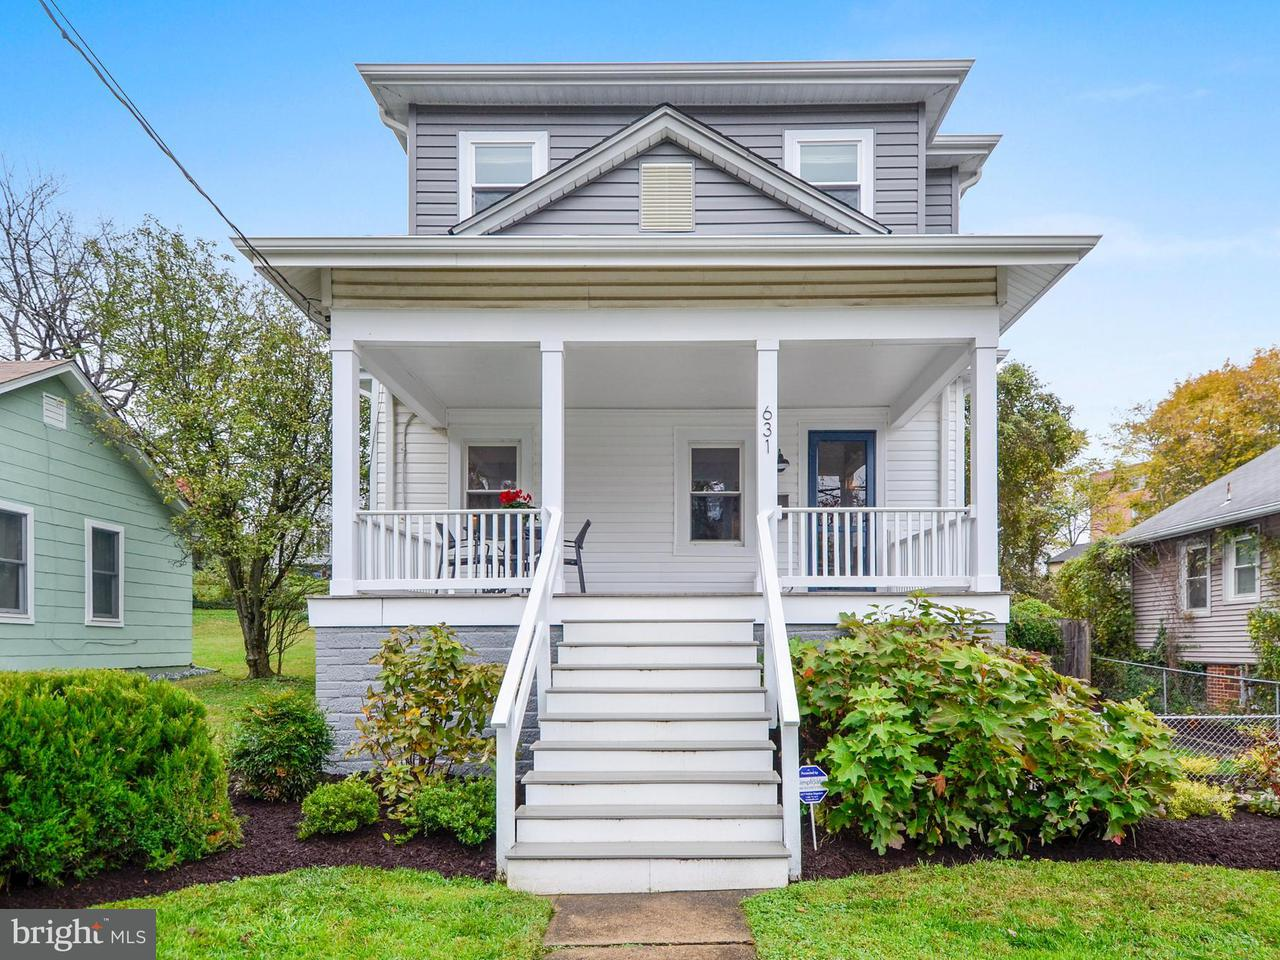 Single Family Home for Sale at 631 MISSISSIPPI Avenue 631 MISSISSIPPI Avenue Silver Spring, Maryland 20910 United States